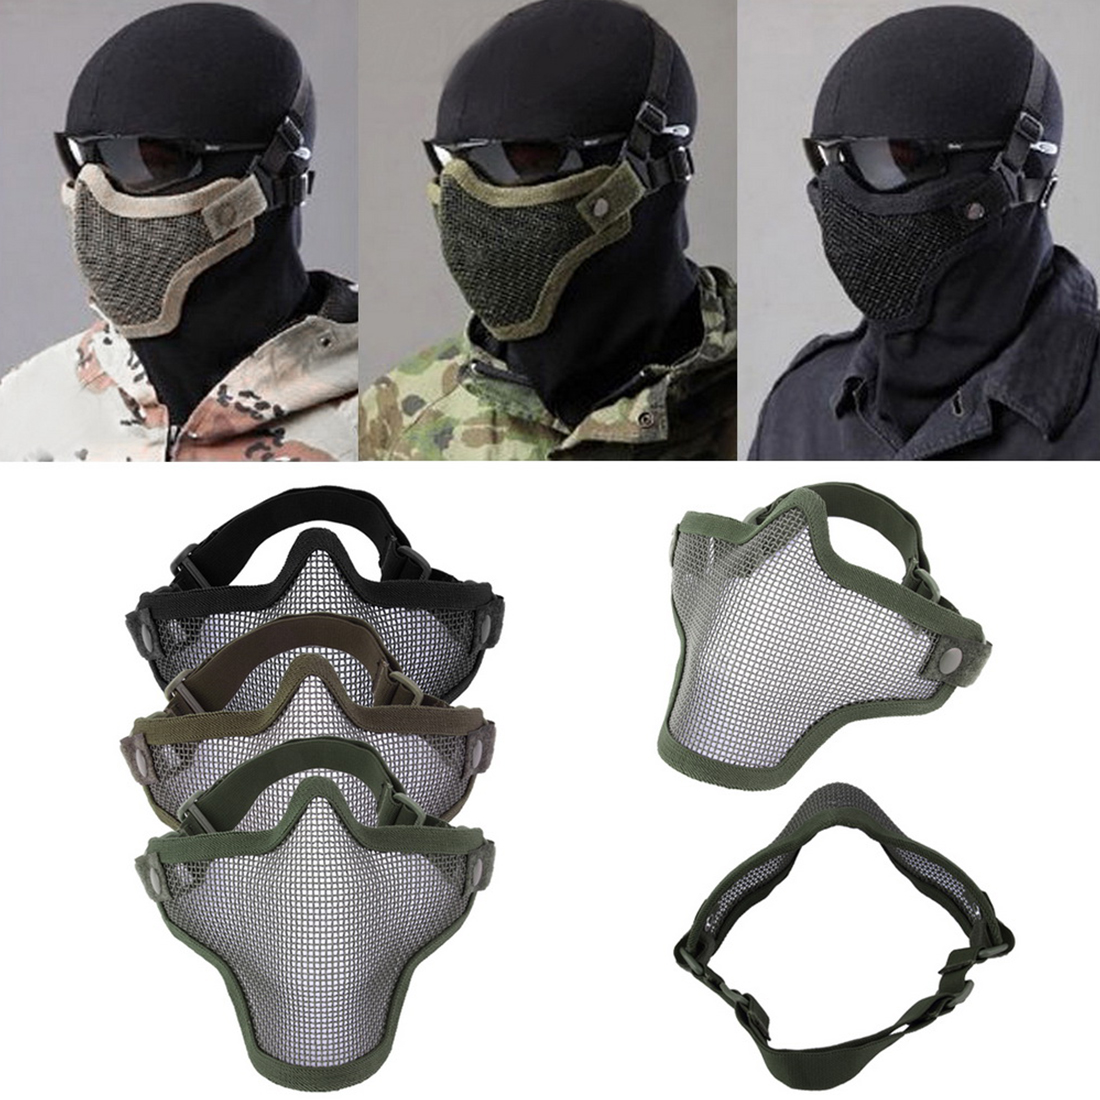 Brand New Half Lower Face Metal Steel Net Mesh Hunting Tactical Protective Airsoft Mask For Military Paintball Airsoft